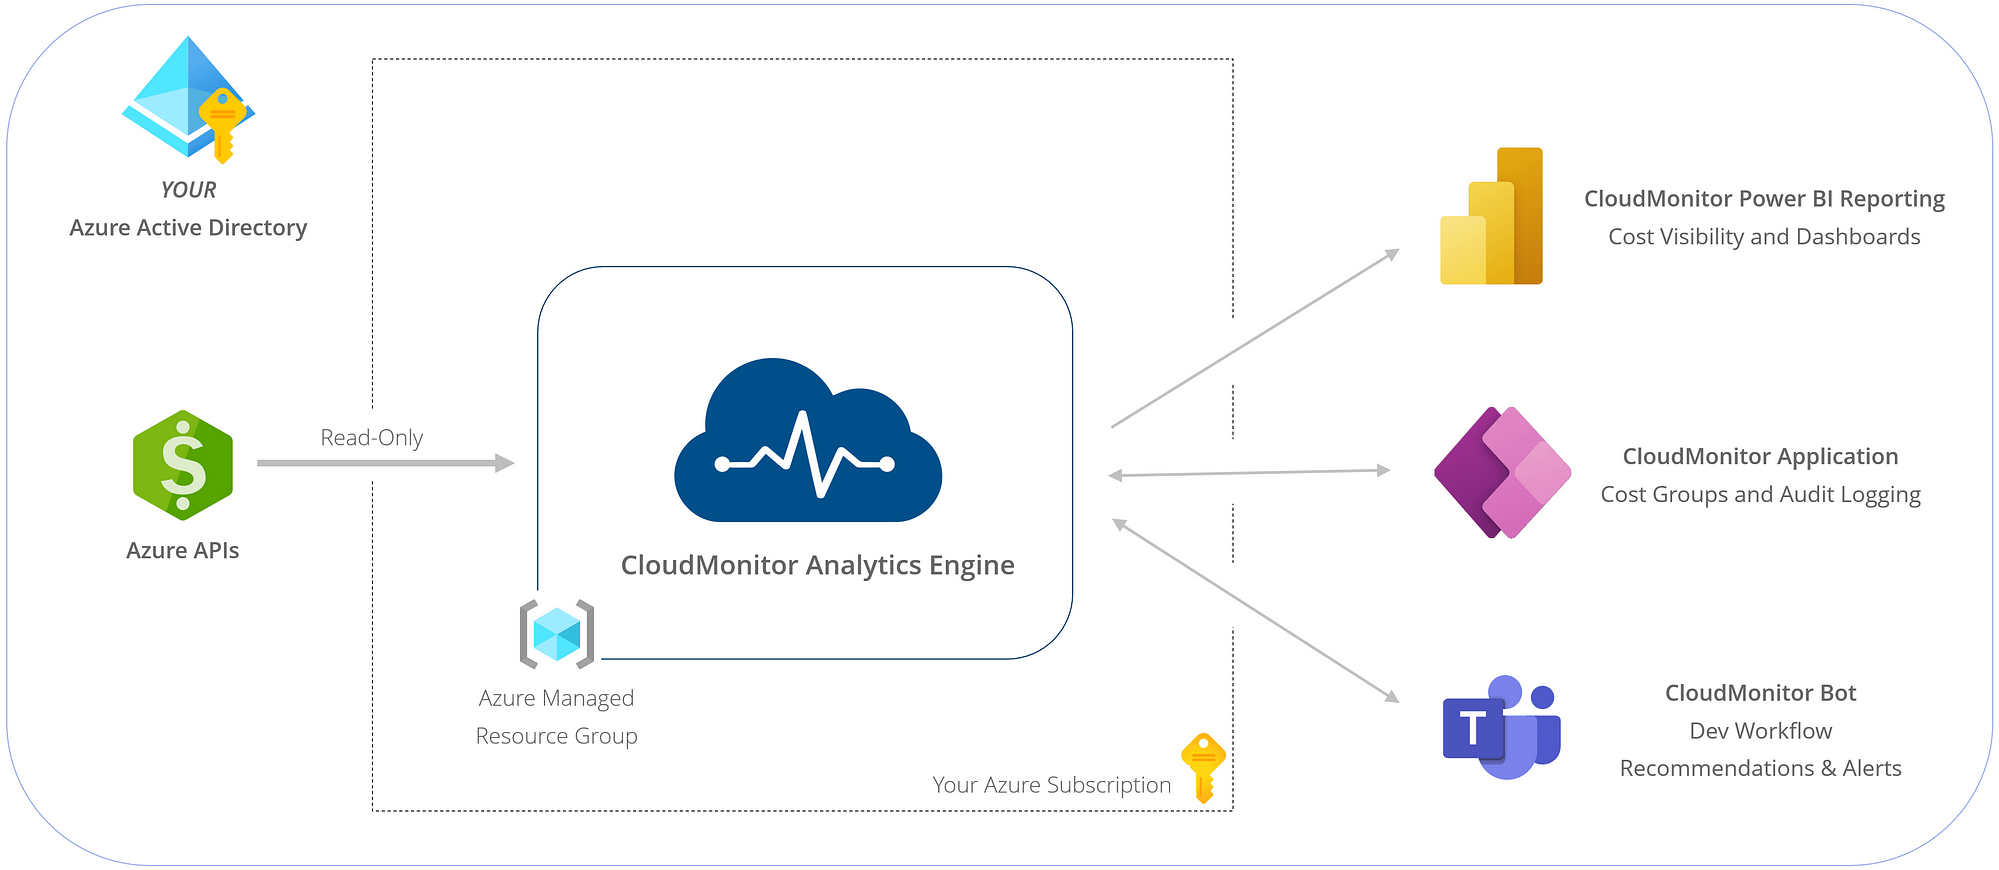 CloudMonitor Solution Components